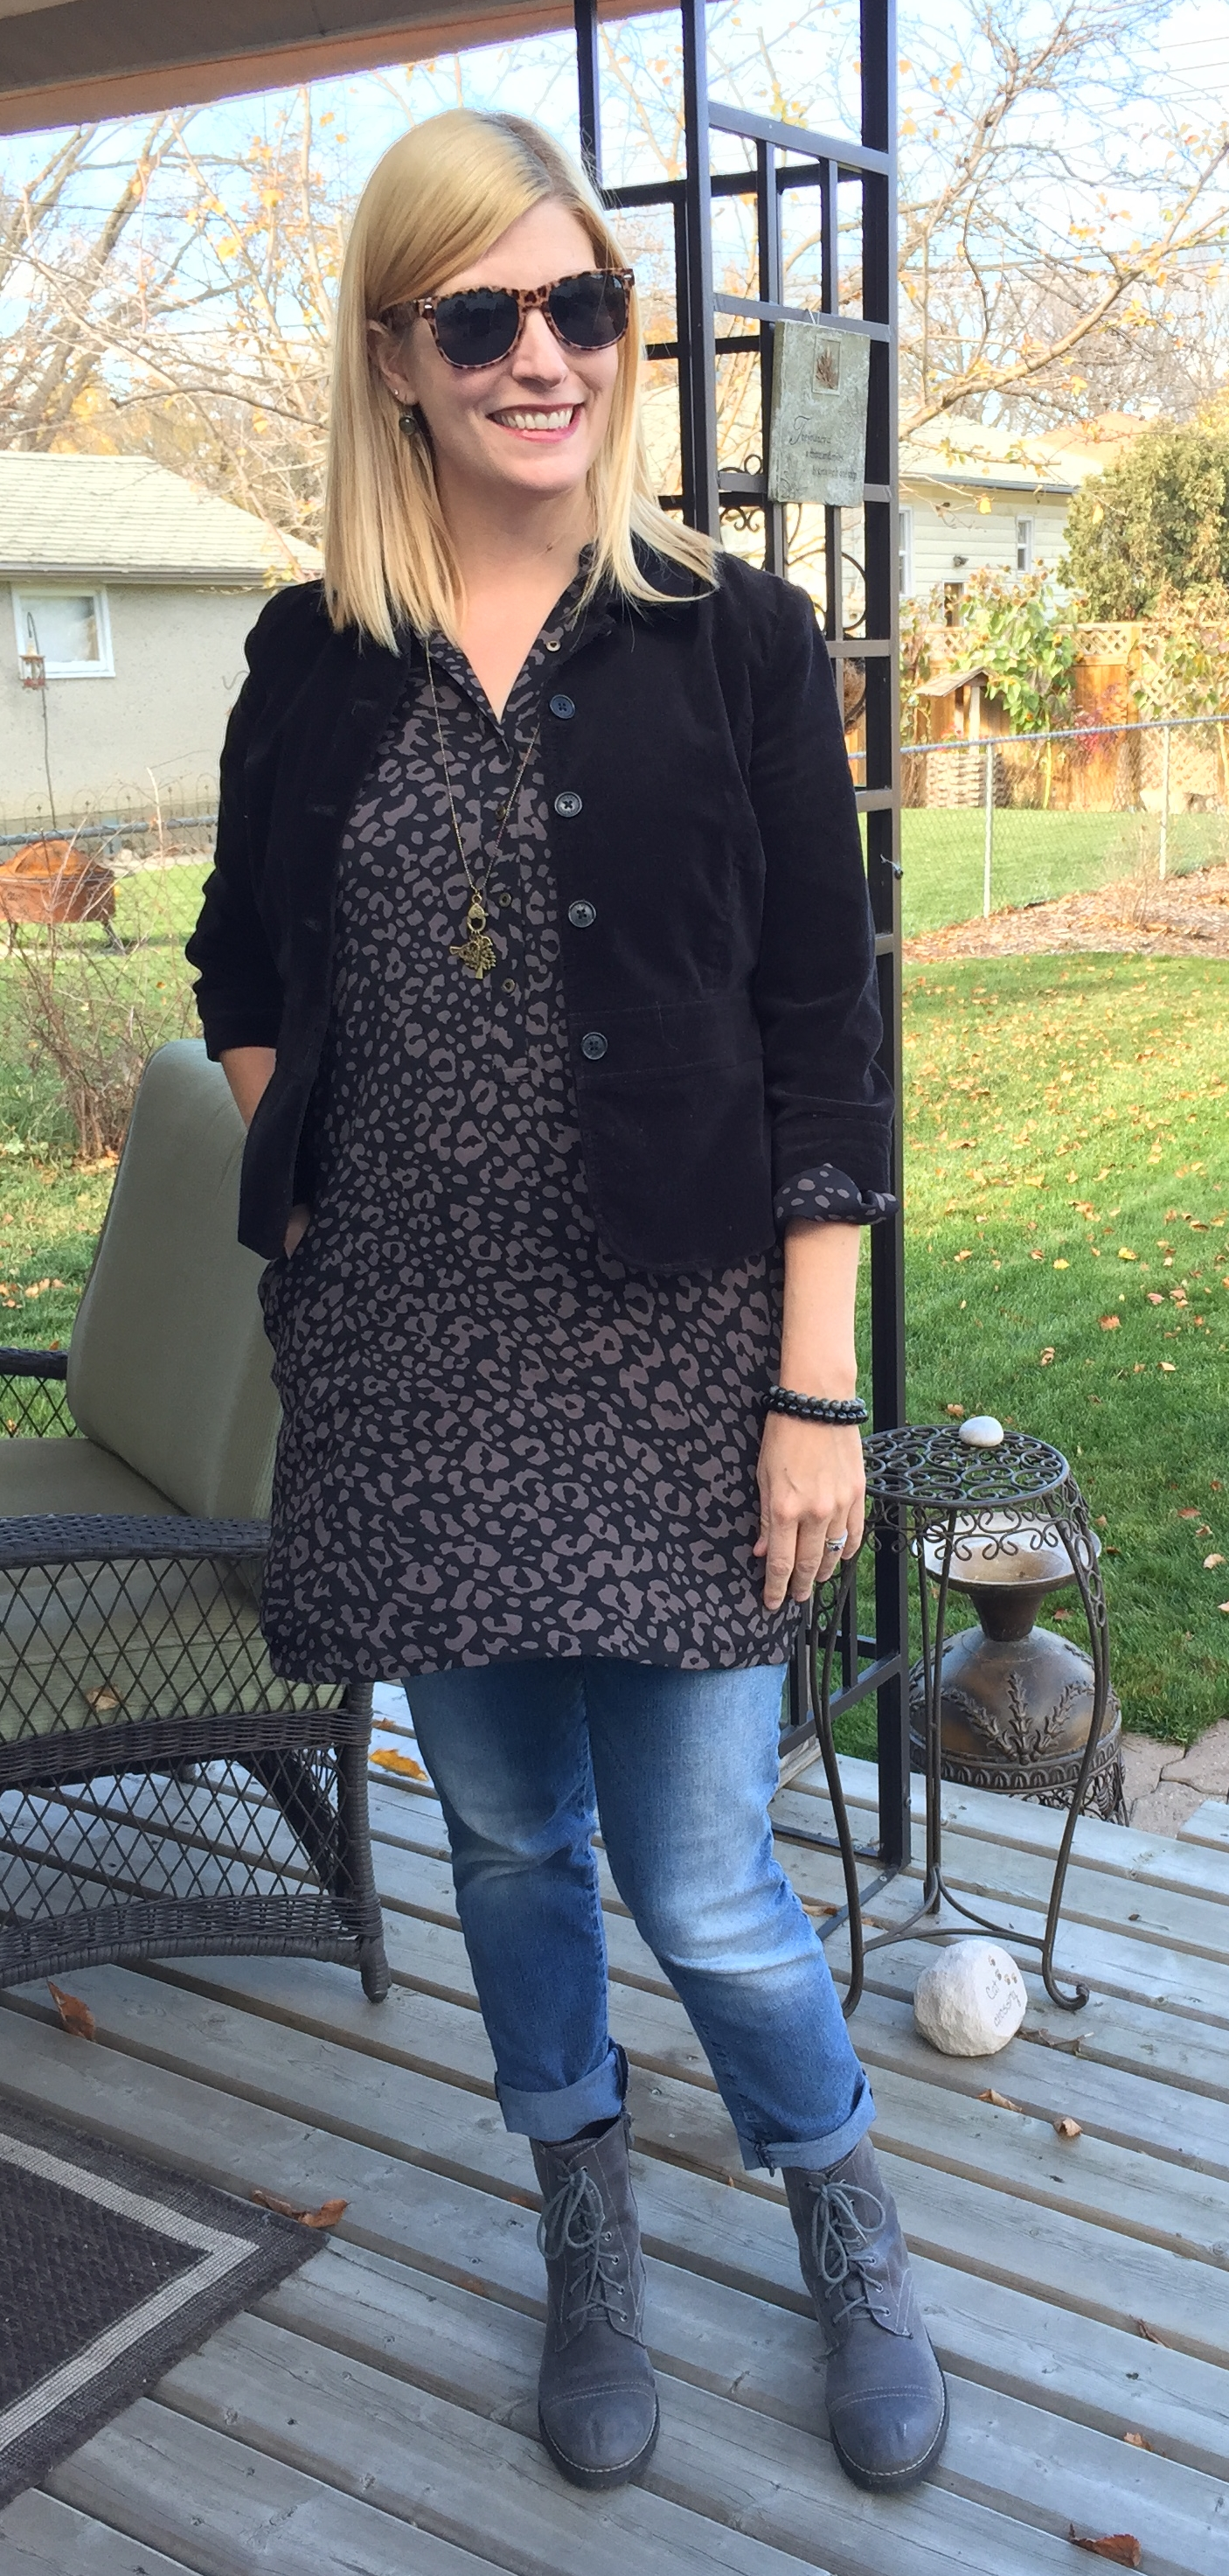 Embracing sustainability in my outfit - thrifted $2.80 denim, $9.10 Ann Taylor dress, $11.90 leather boots and $2.50 sunnies; accessories by local designer She Does Create; belt (not shown) by ethical manufacturer Flatter Me Belts; velvet blazer from my closet circa 2002 - when some of the girls were born! Buy well and pieces will last like this!